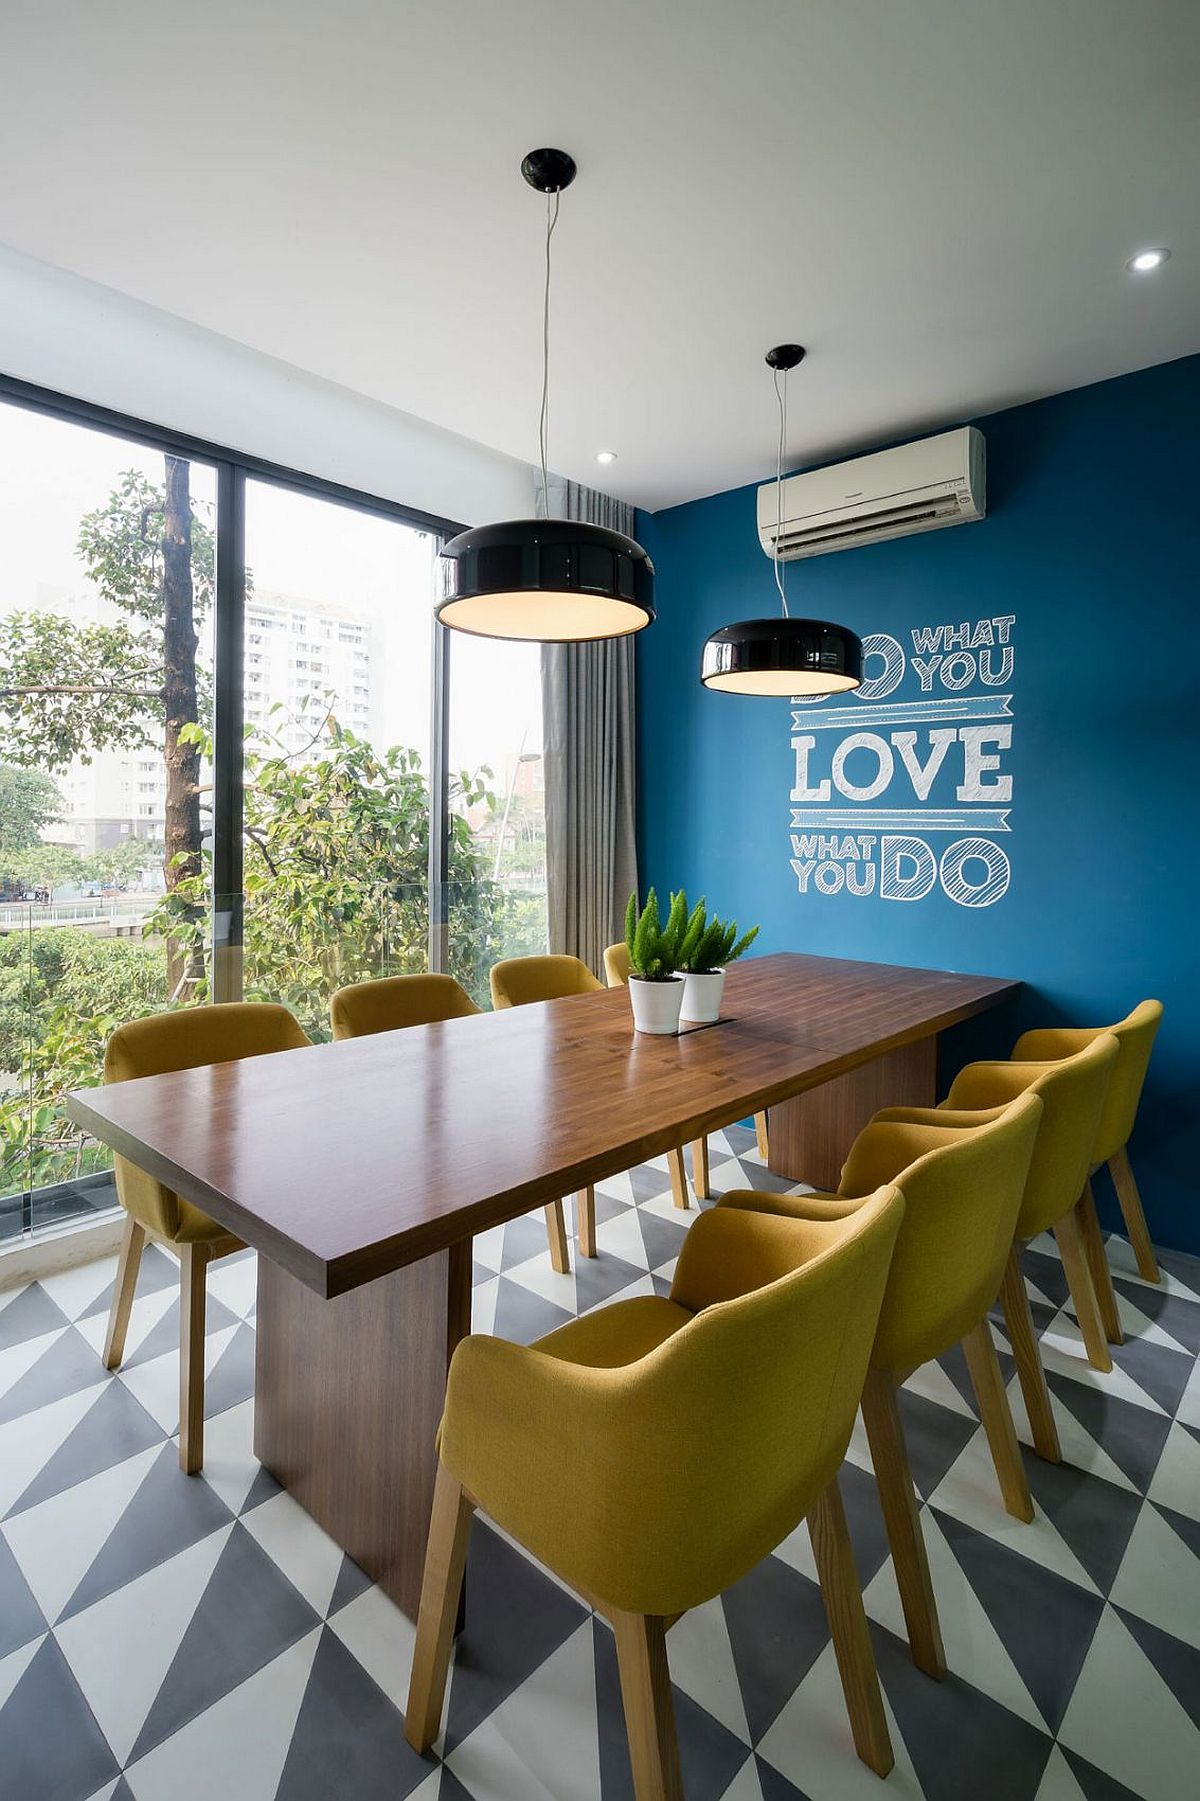 Conference area and workstation with a splash of blue and geo tiled flooring